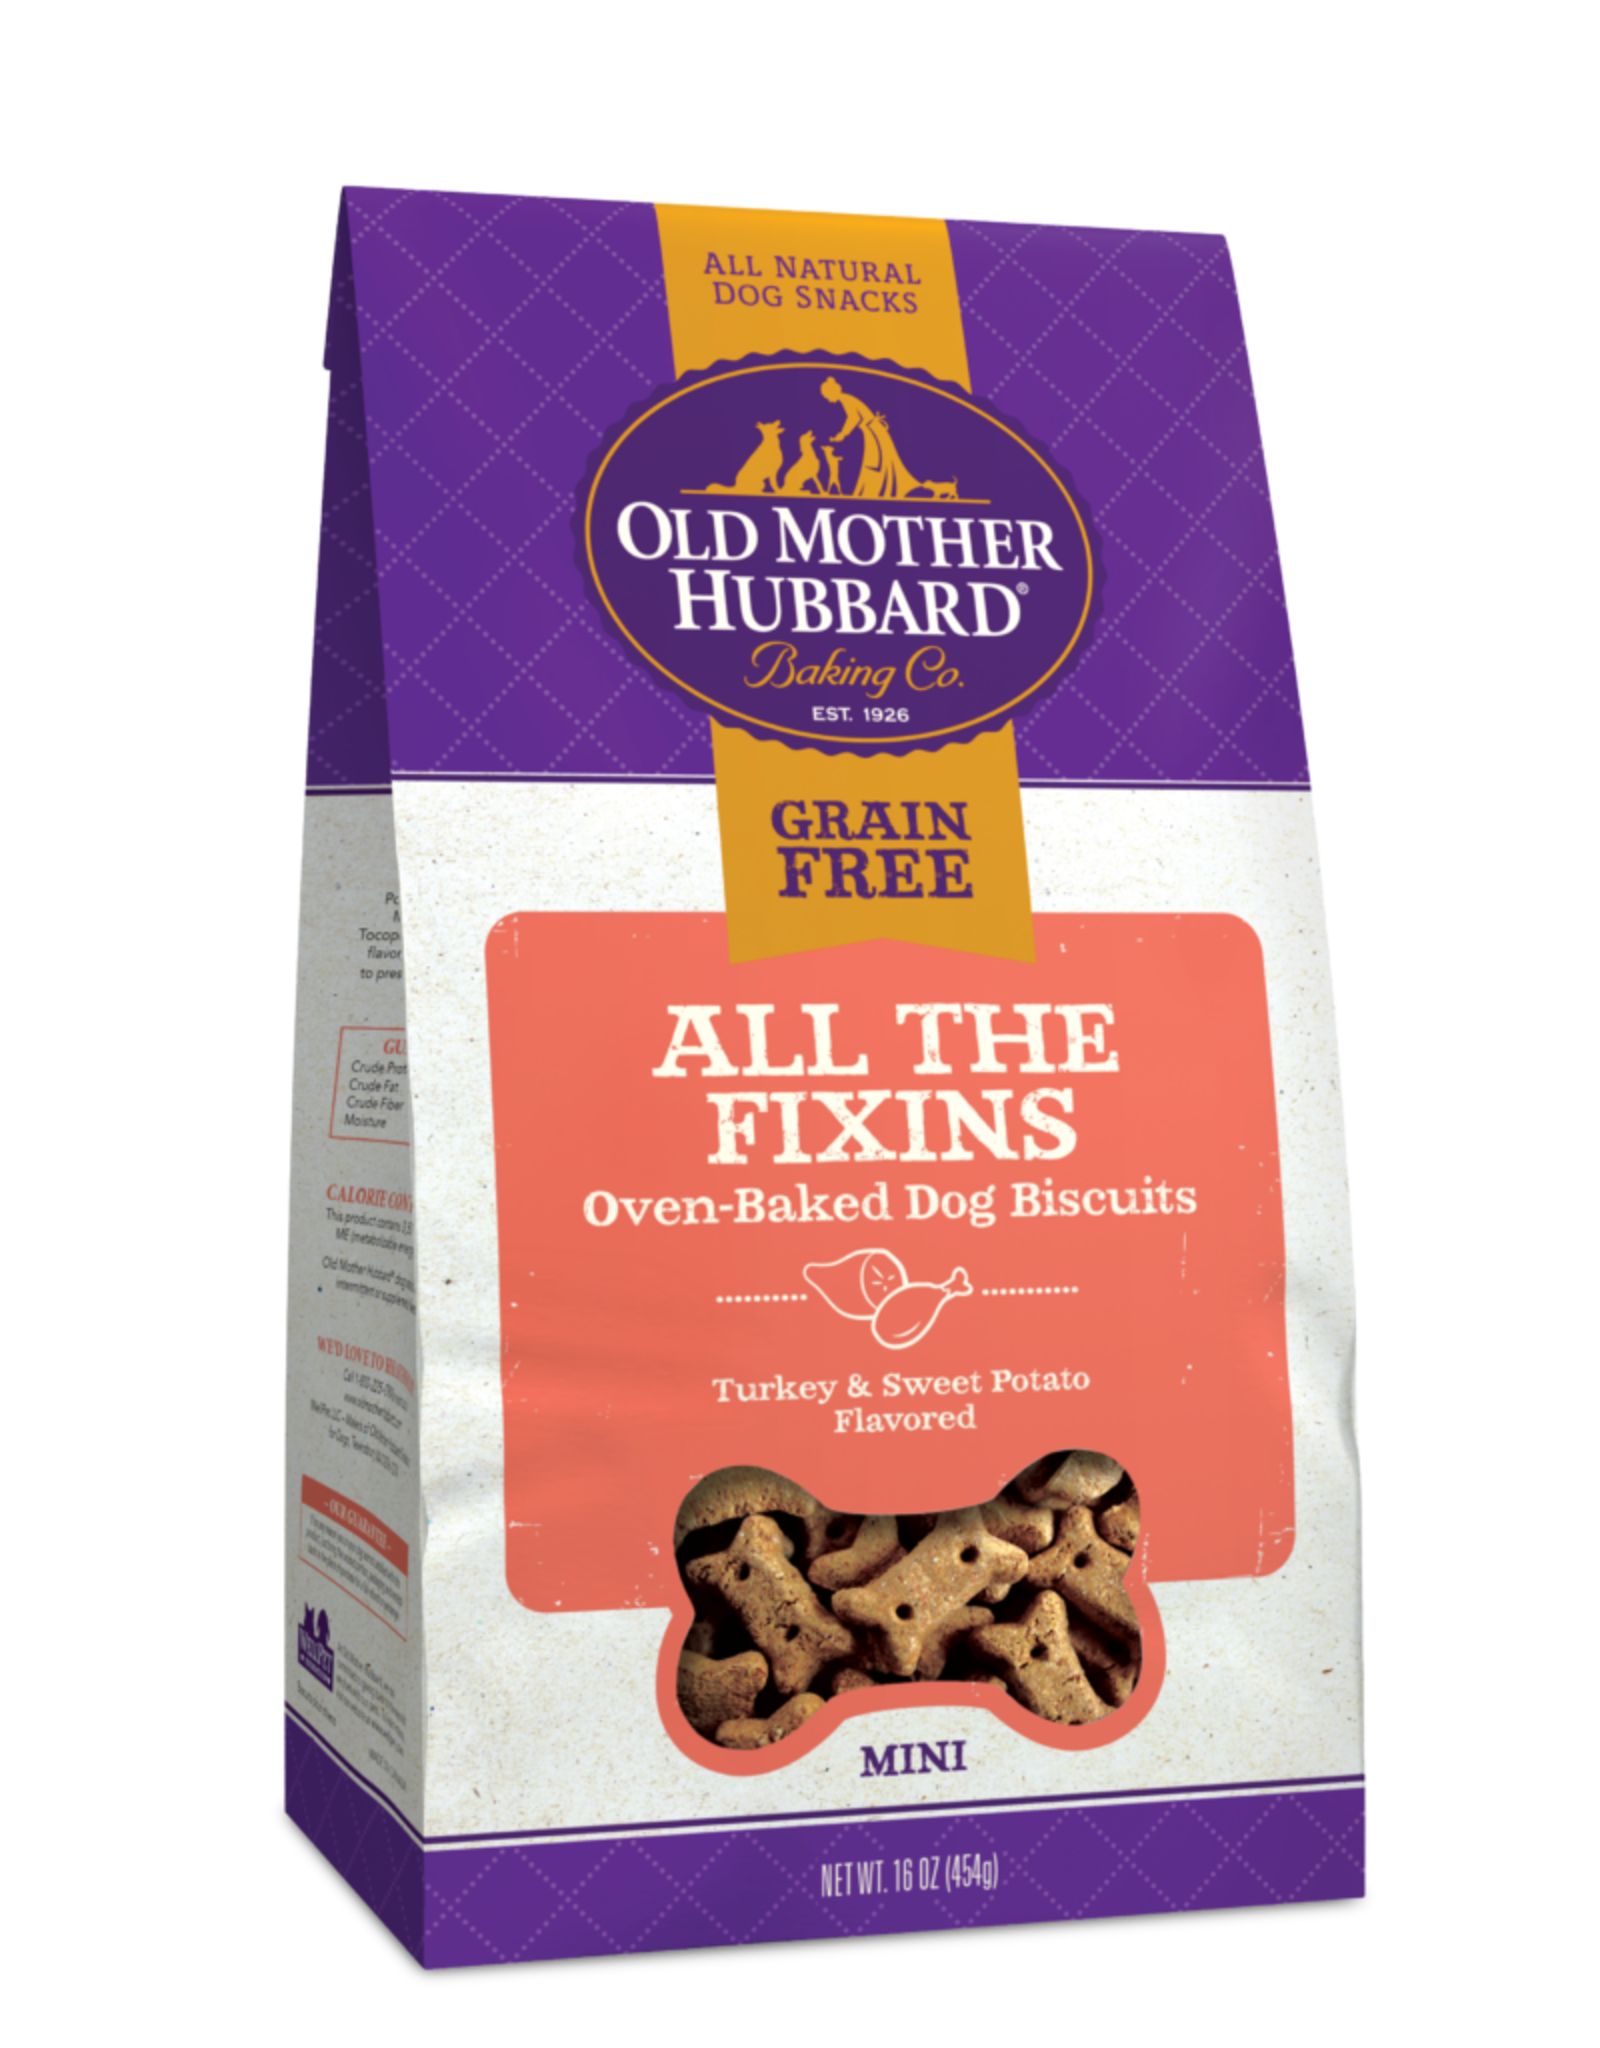 Old Mother Hubbard Old Mother Hubbard Grain Free All the Fixins Mini 16oz